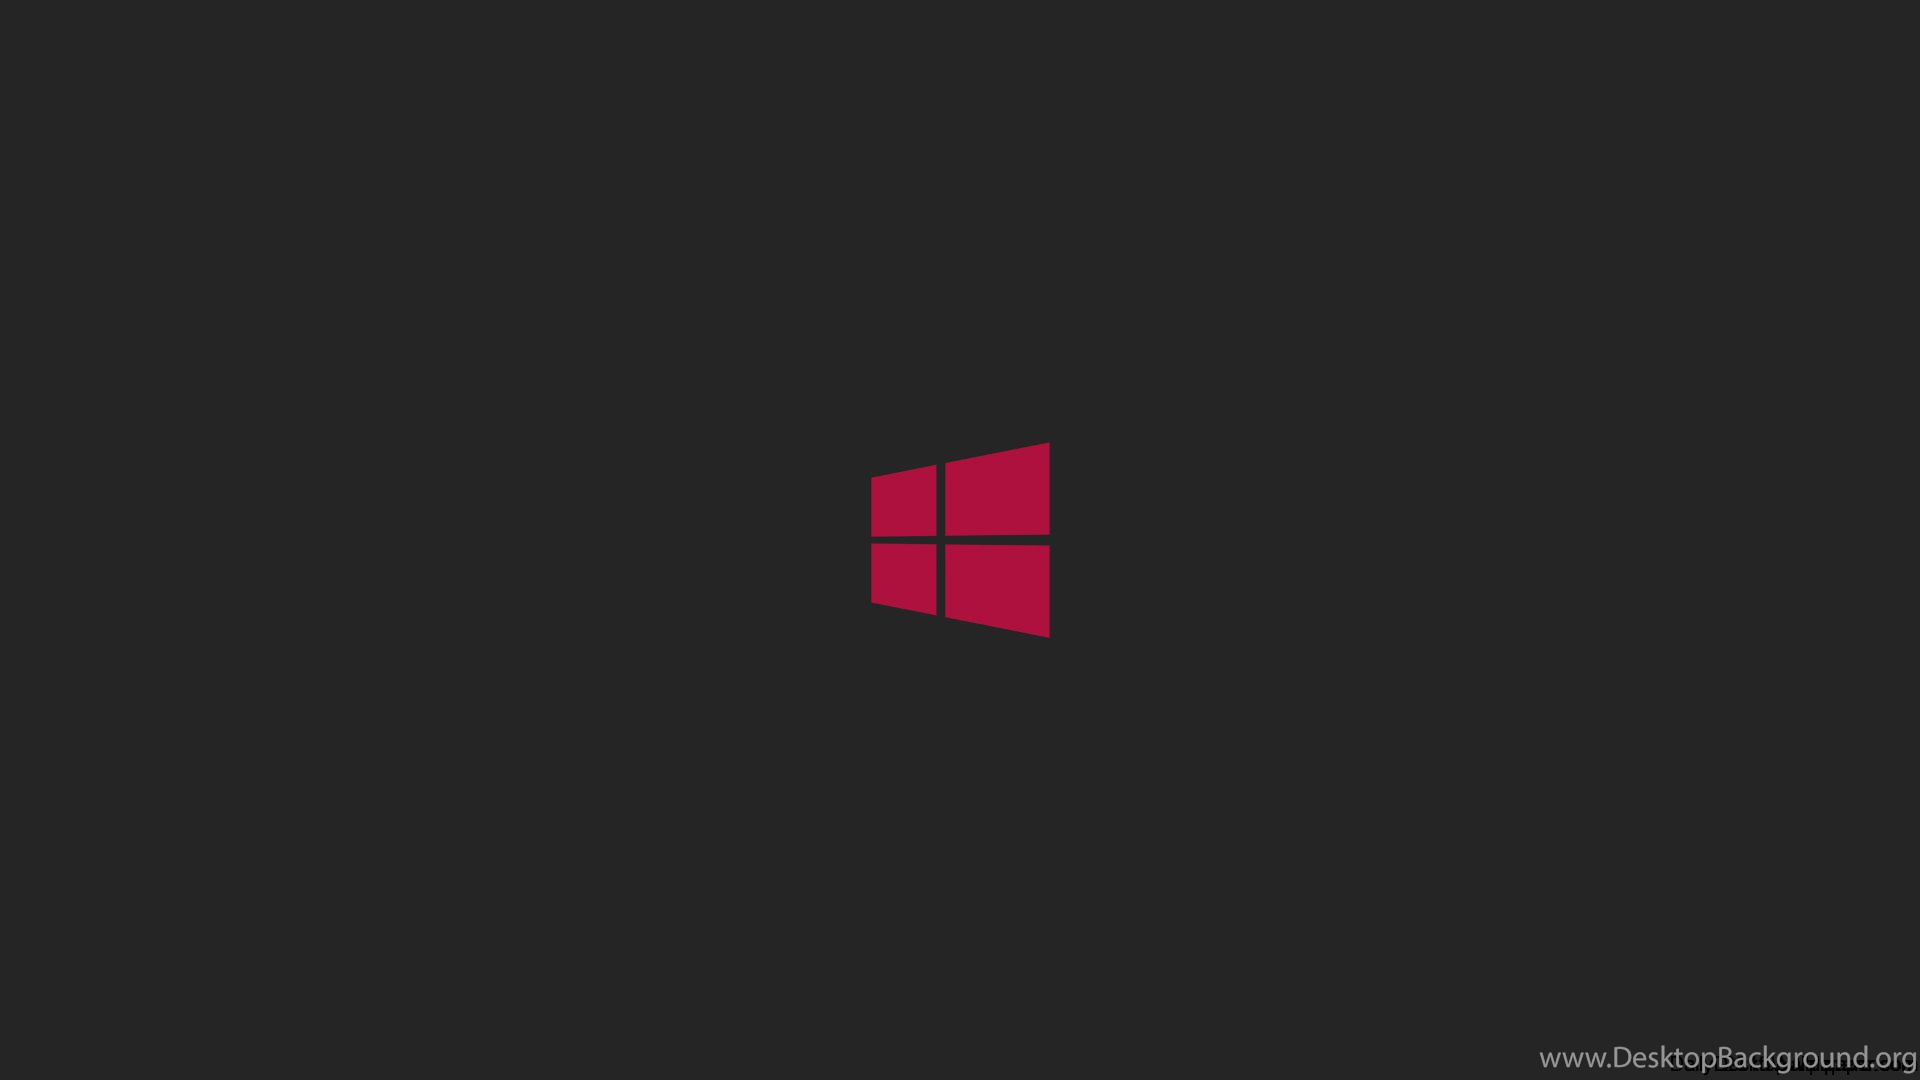 window 8 logo hd wallpapers hd images new desktop background